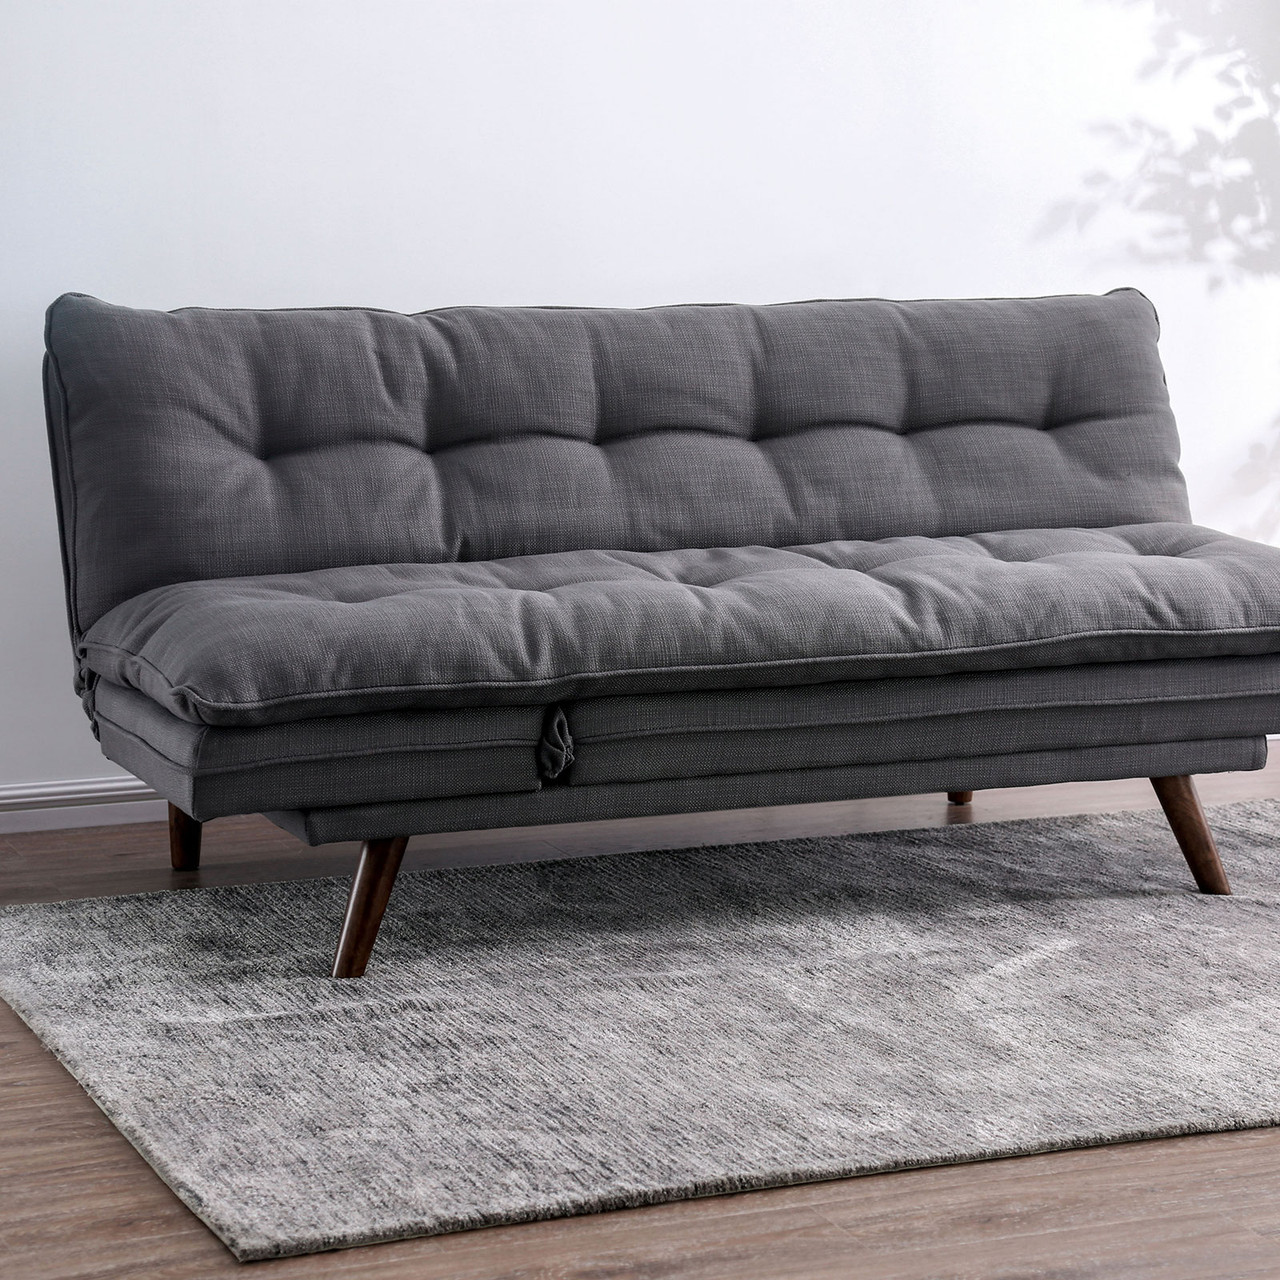 The Braga Mid Century Modern Transitional Futon Sofa Available At Furniture Express Hi Serving Honolulu Hi And Surrounding Areas